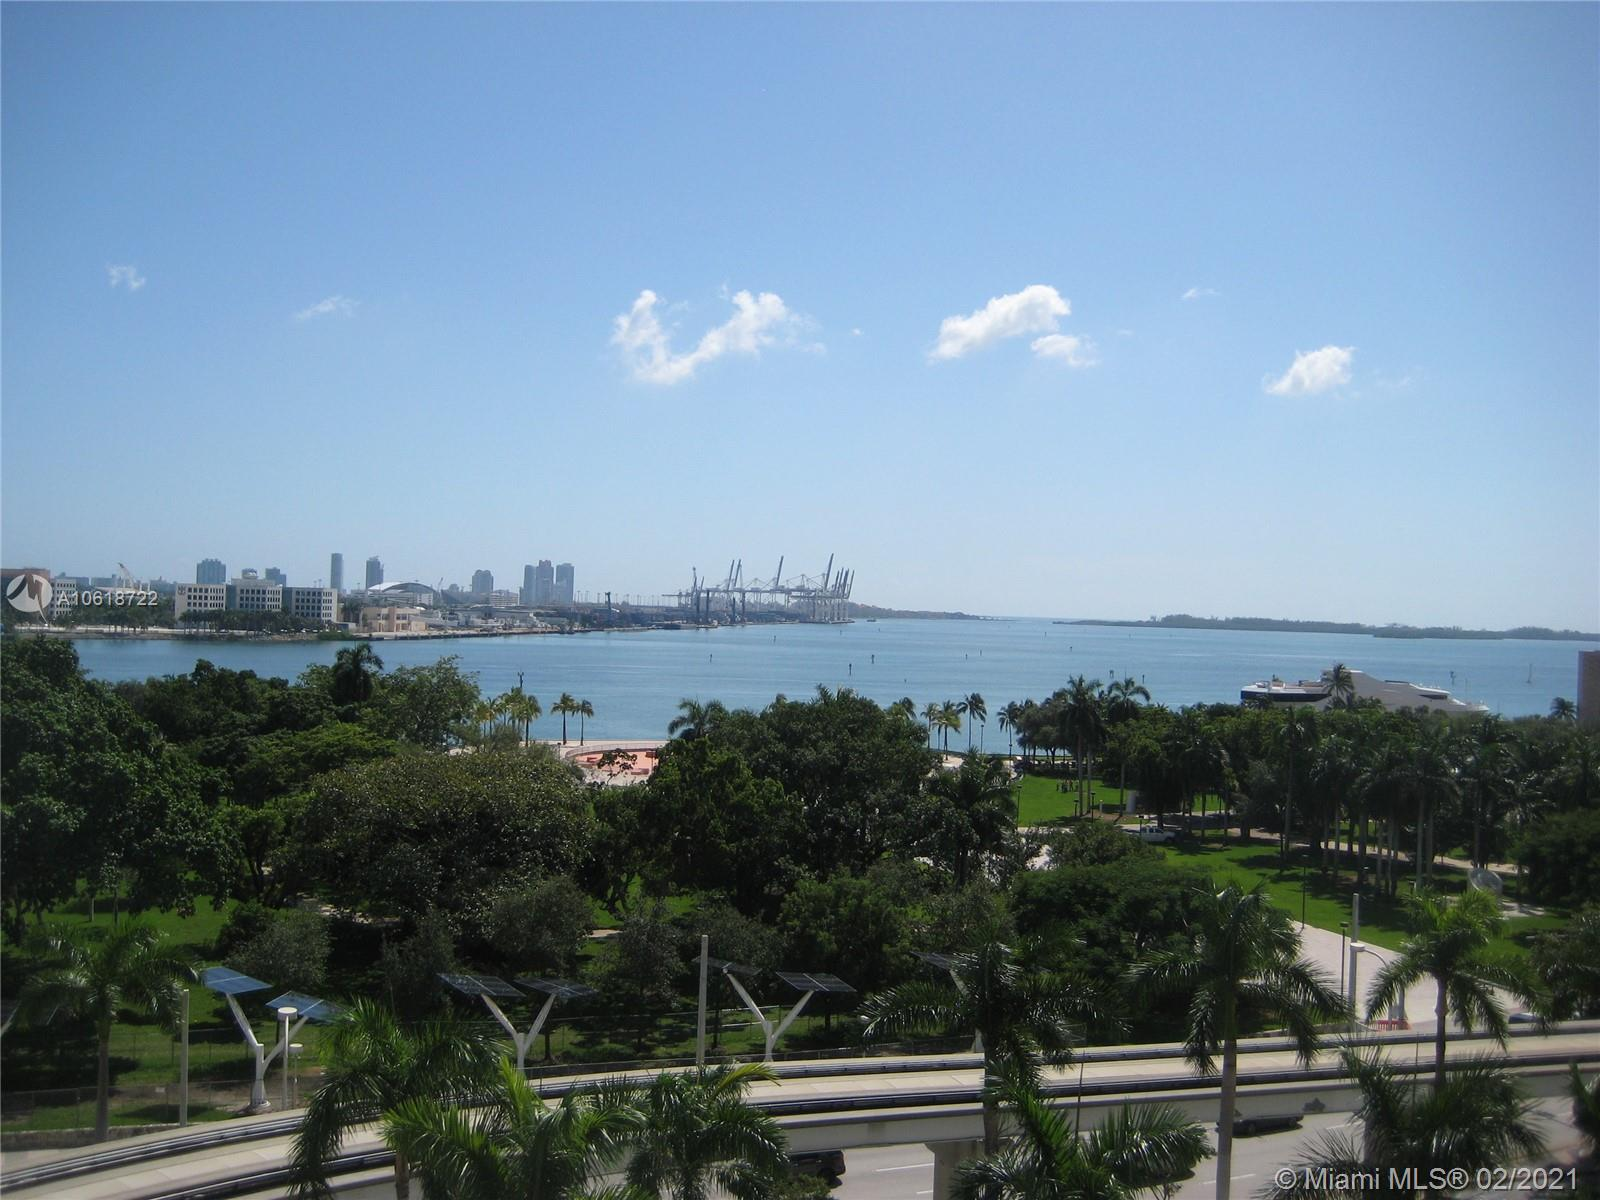 Investment opportunity! Charming, designer furnished studio in Downtown Miami by Rockwell Group. Direct bay views and same floor parking space. Great location, near Arena, Bayside Park, Brickell, shopping, restaurants and more. Gorgeous pool with club house and cabanas. State of the art fitness center and full service spa. Unit is rented to perfect Tenant until June 2021 for $1,700 per month.